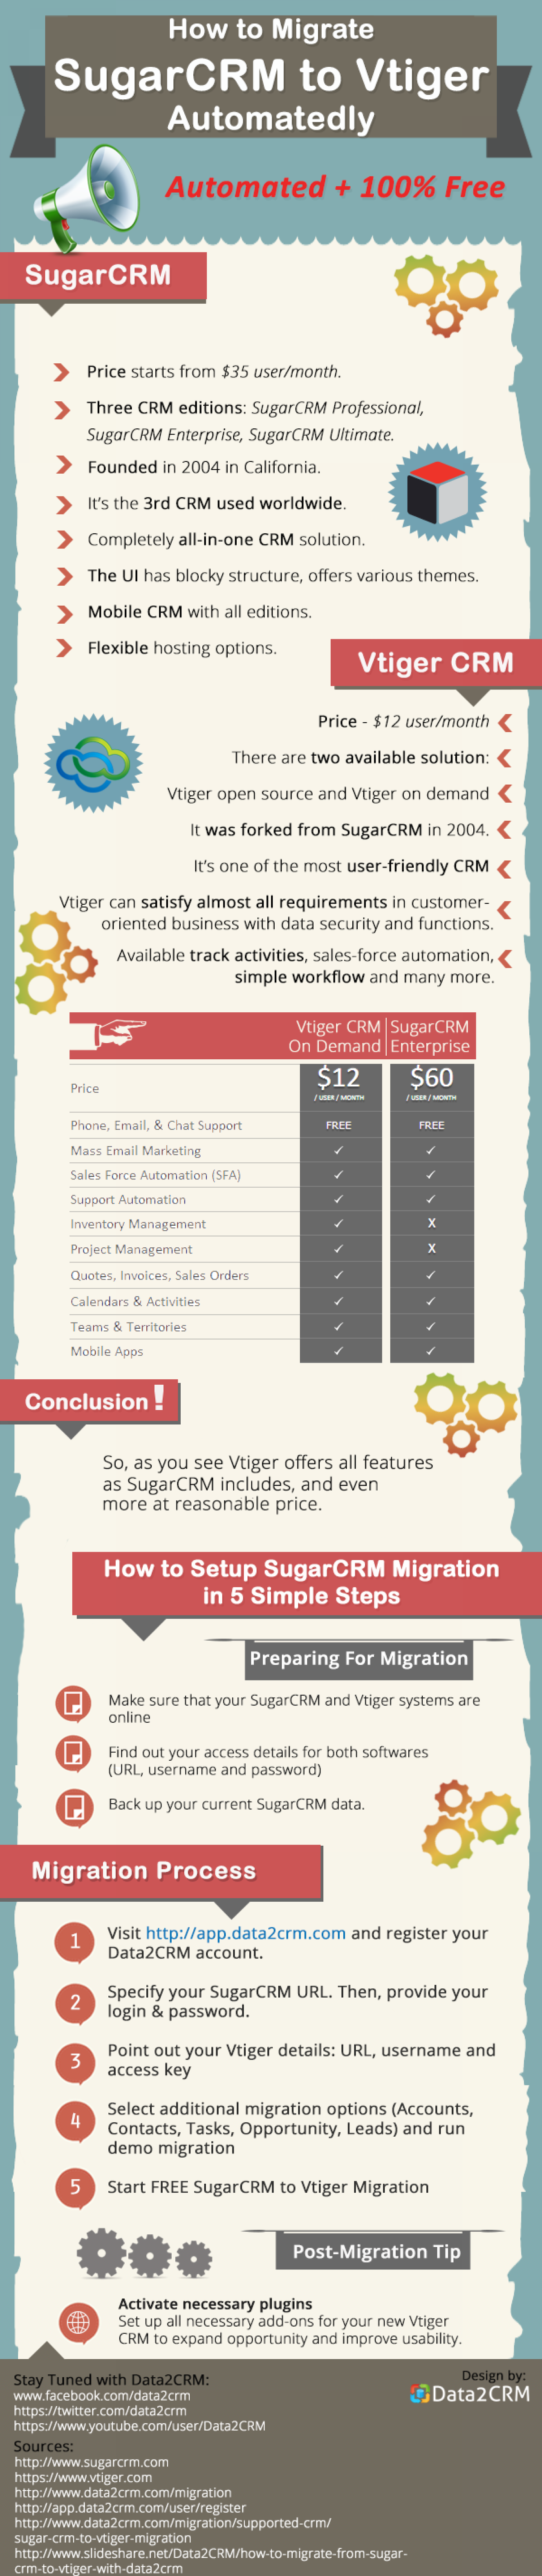 Migrate SugarCRM to Vtiger Automatedly for Free Infographic